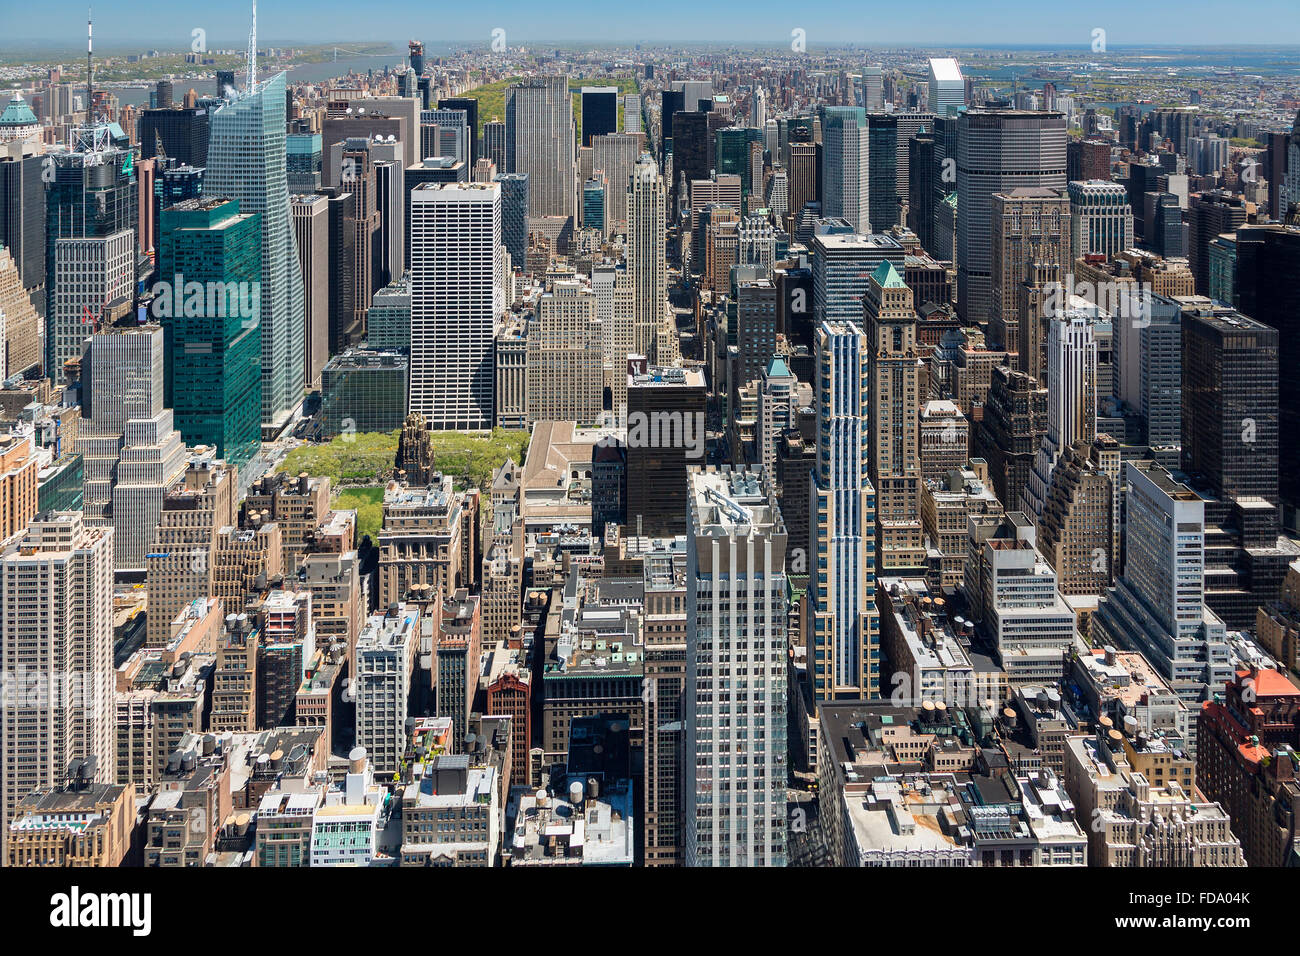 New York, Aerial View from Empire State Building - Stock Image